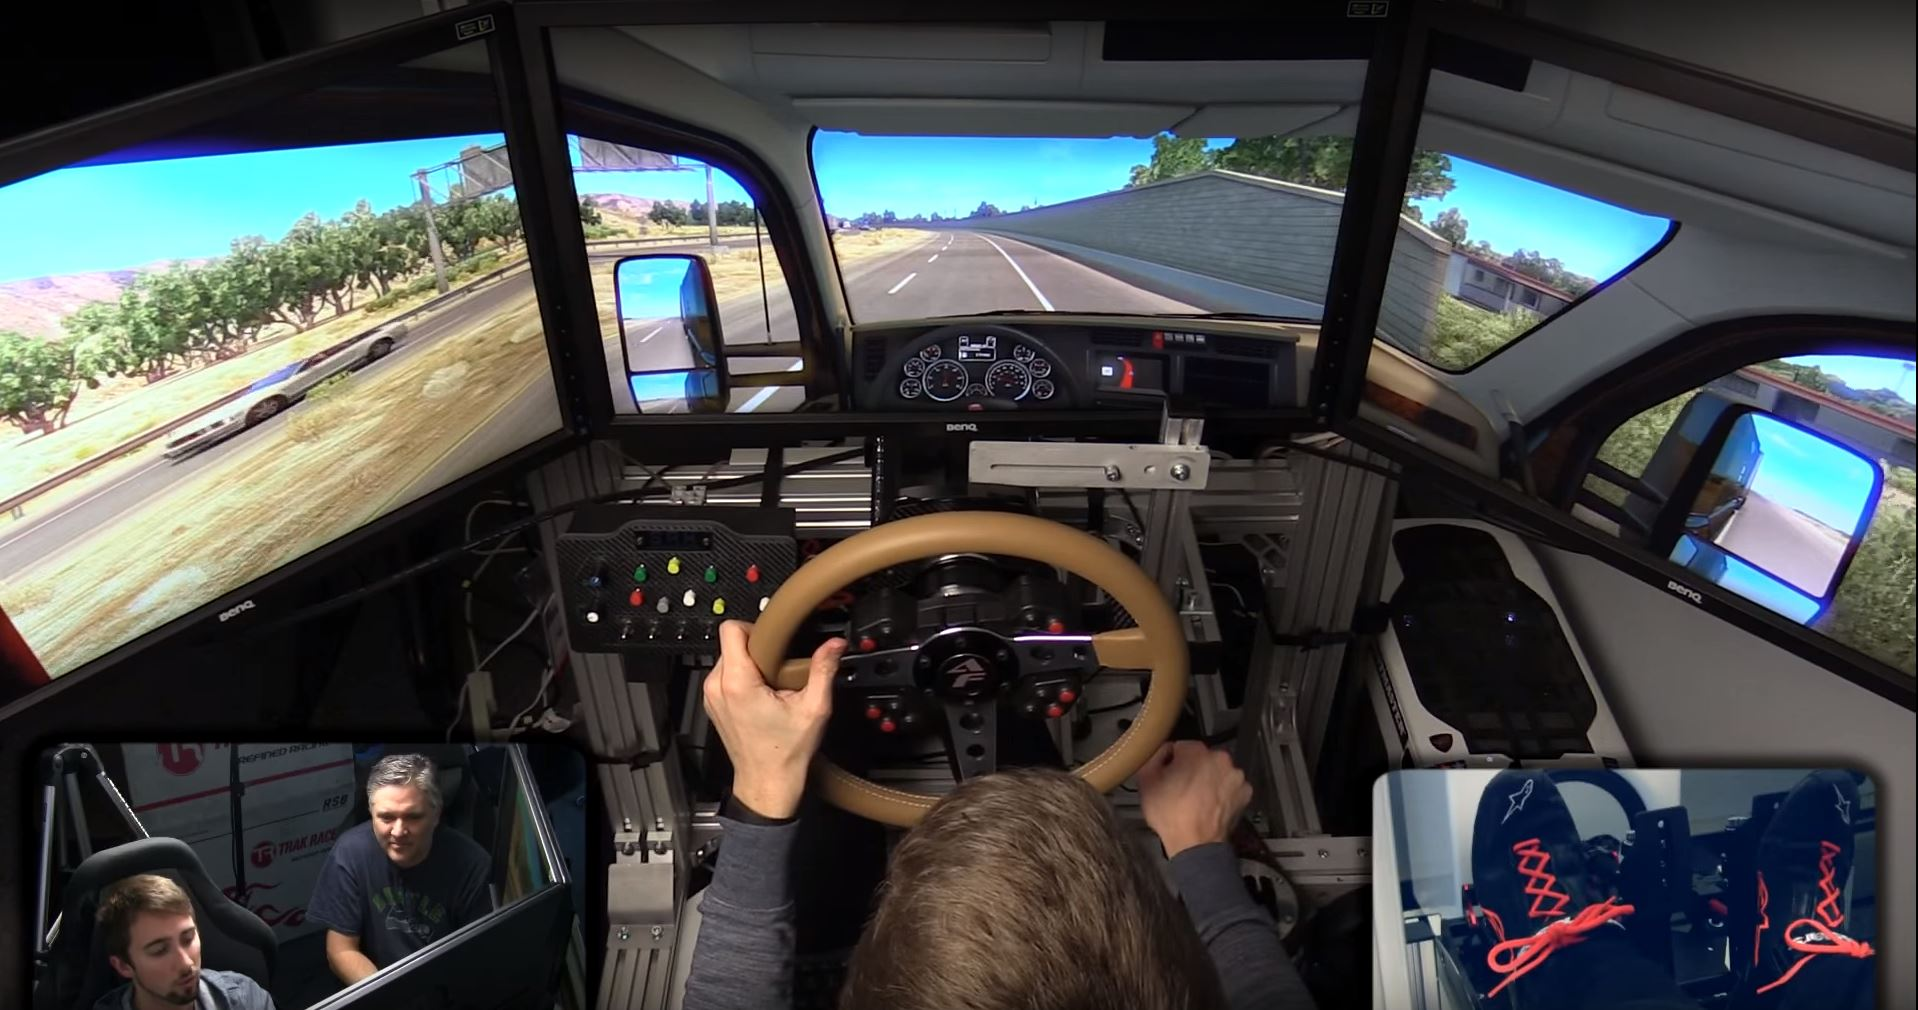 Car Simulator Games >> American Truck Simulator in Stage 4 Motion Sim - Inside Sim Racing